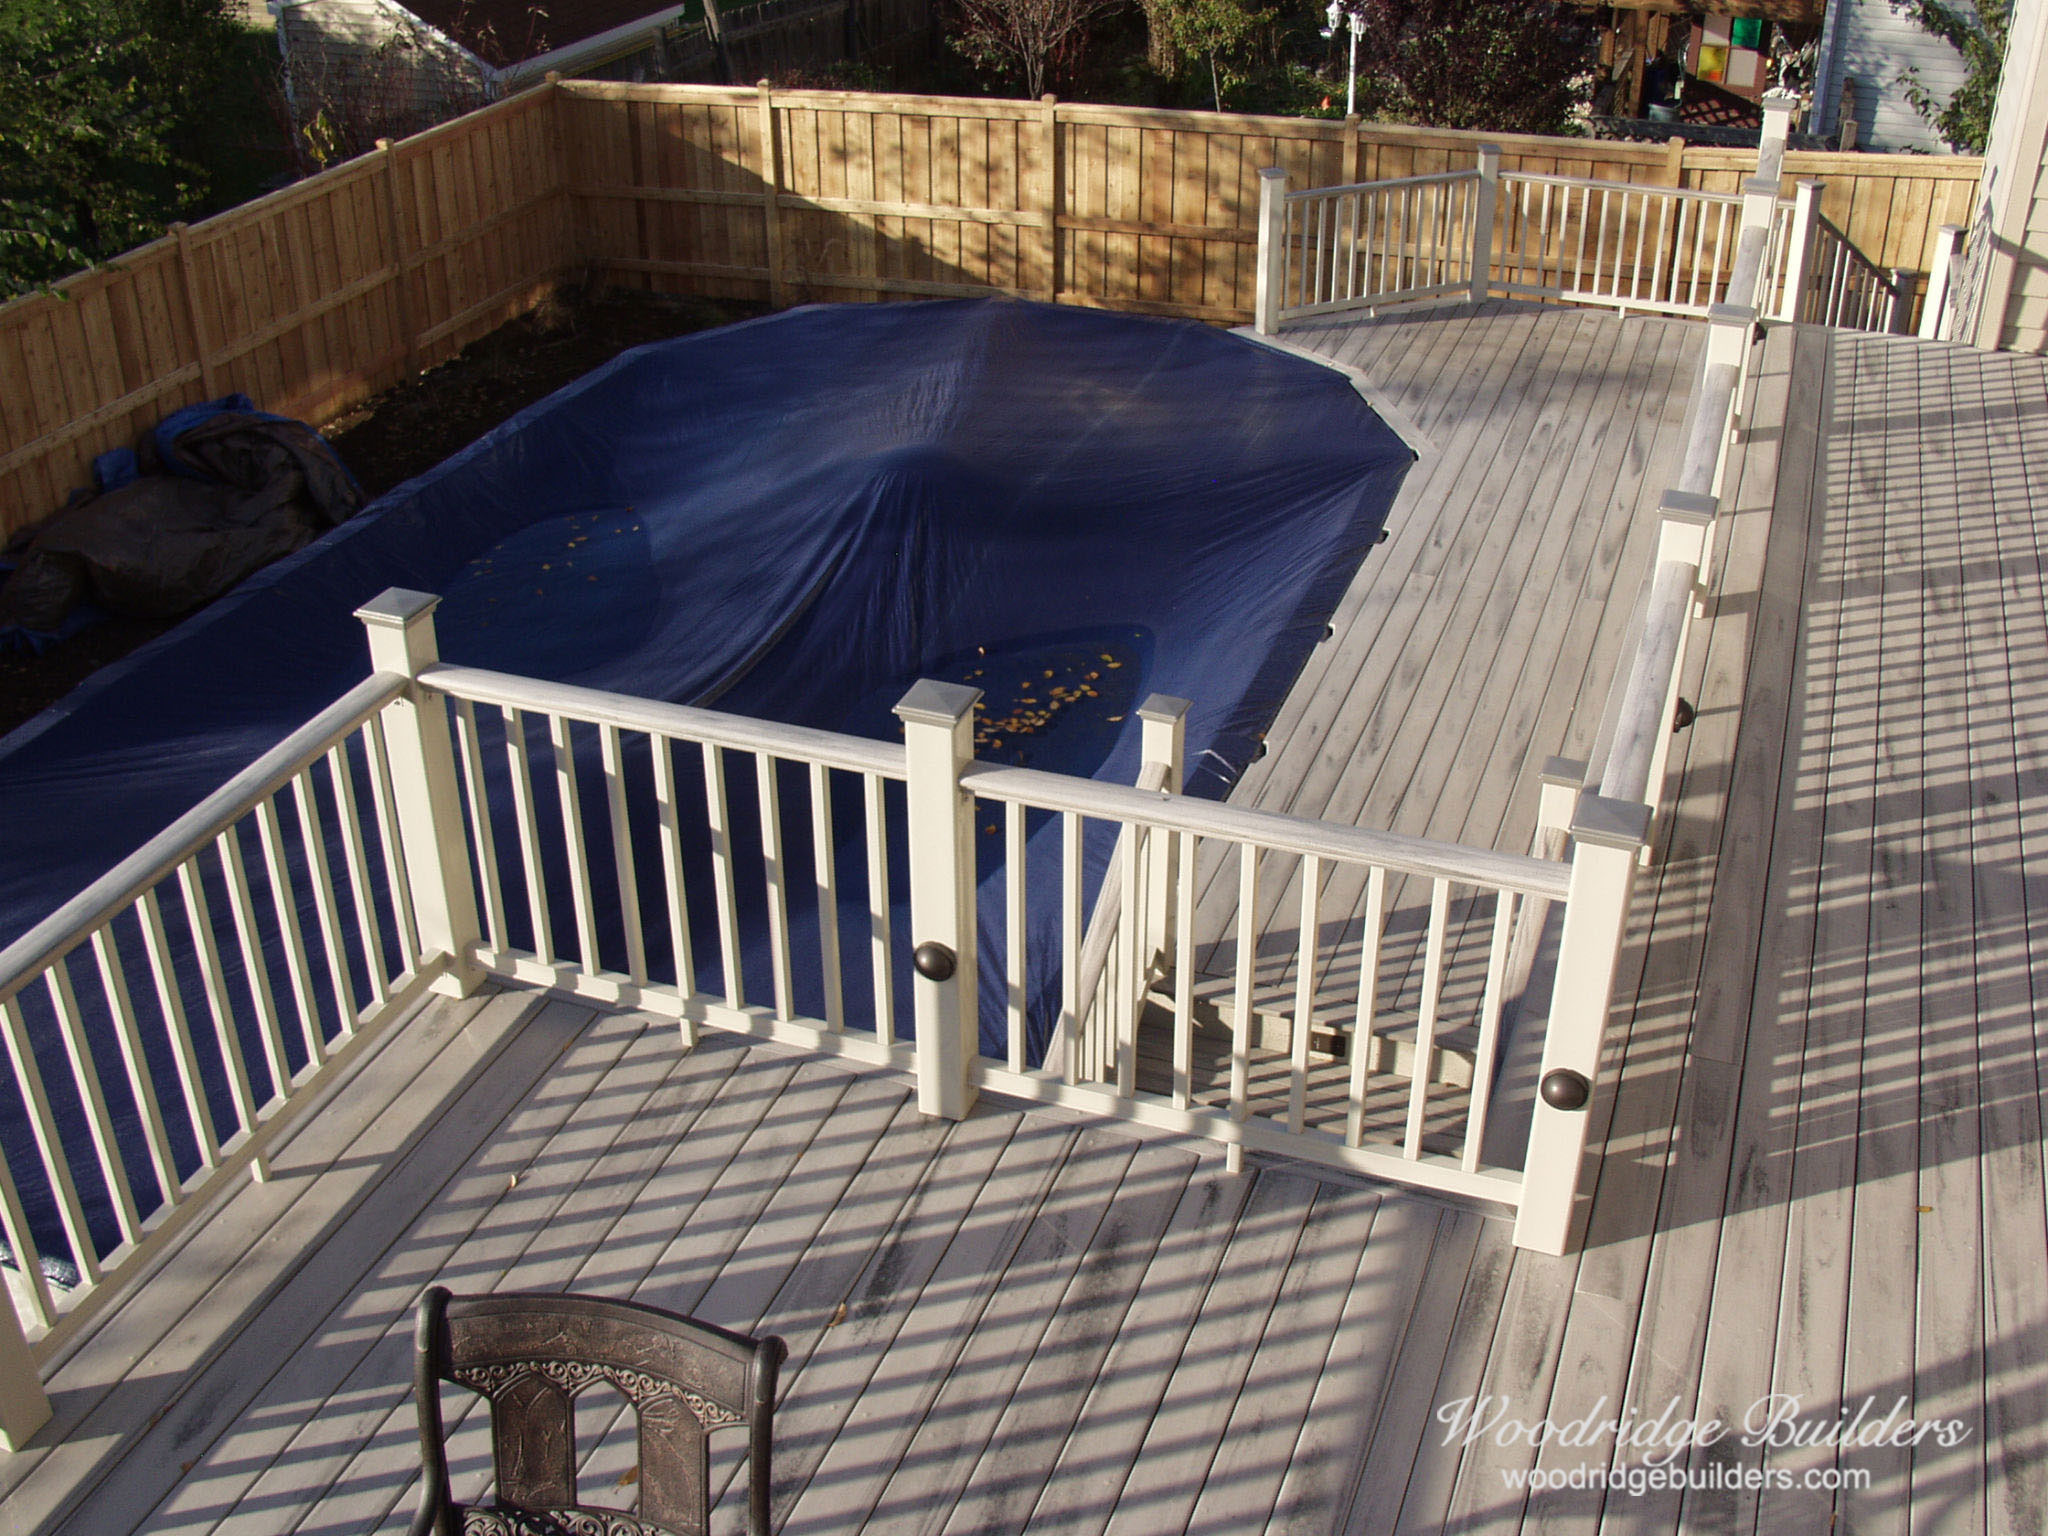 X-02 Composite Deck Woodridge Deck & Gazebo Co.